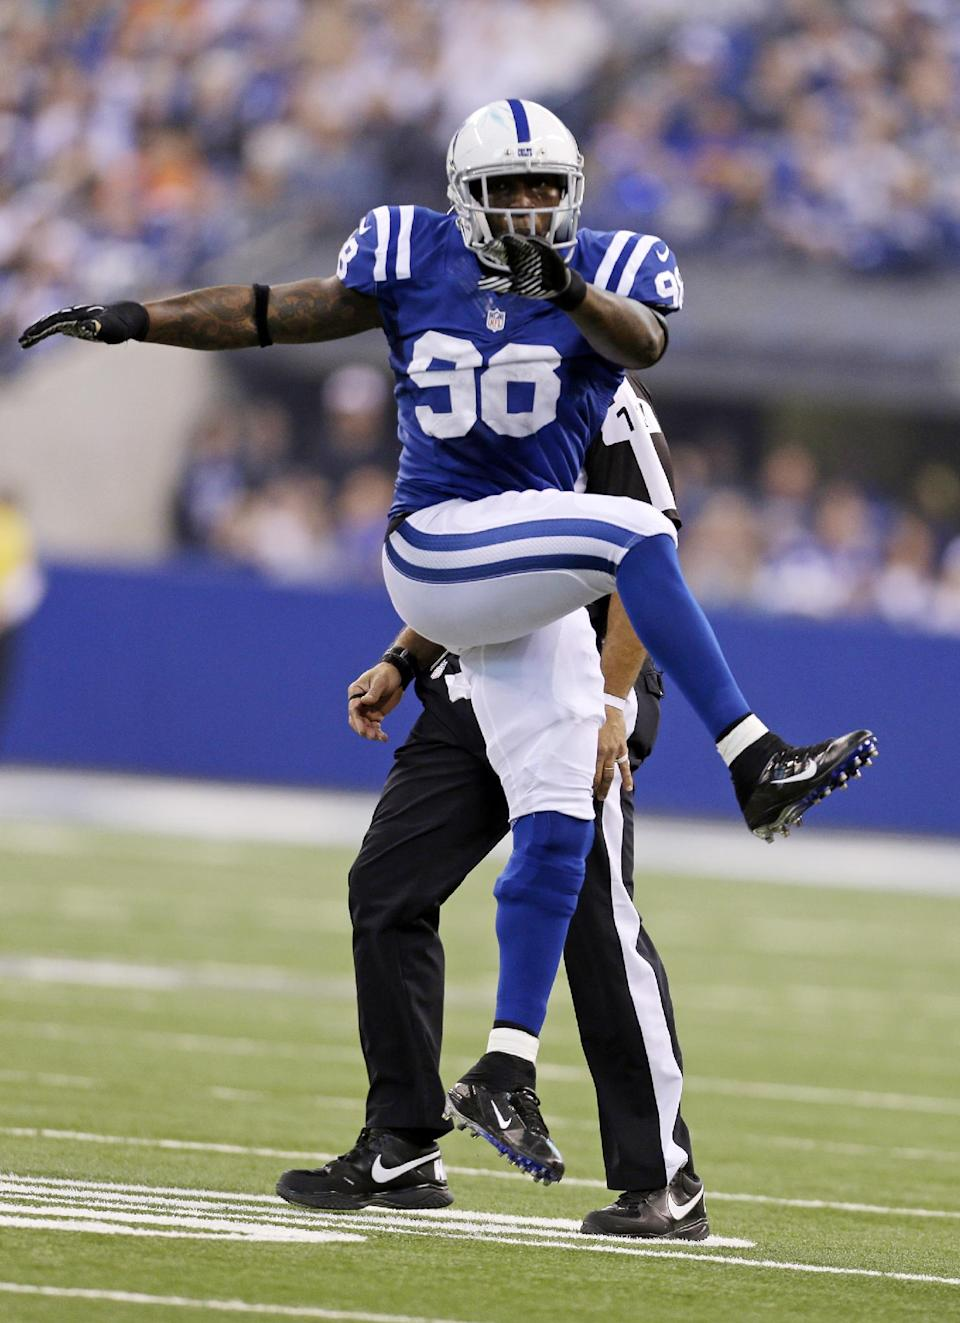 Indianapolis Colts outside linebacker Robert Mathis celebrates a defensive stop against the Miami Dolphins during the first half of an NFL football game in Indianapolis, Sunday, Nov. 4, 2012. (AP Photo/Darron Cummings)